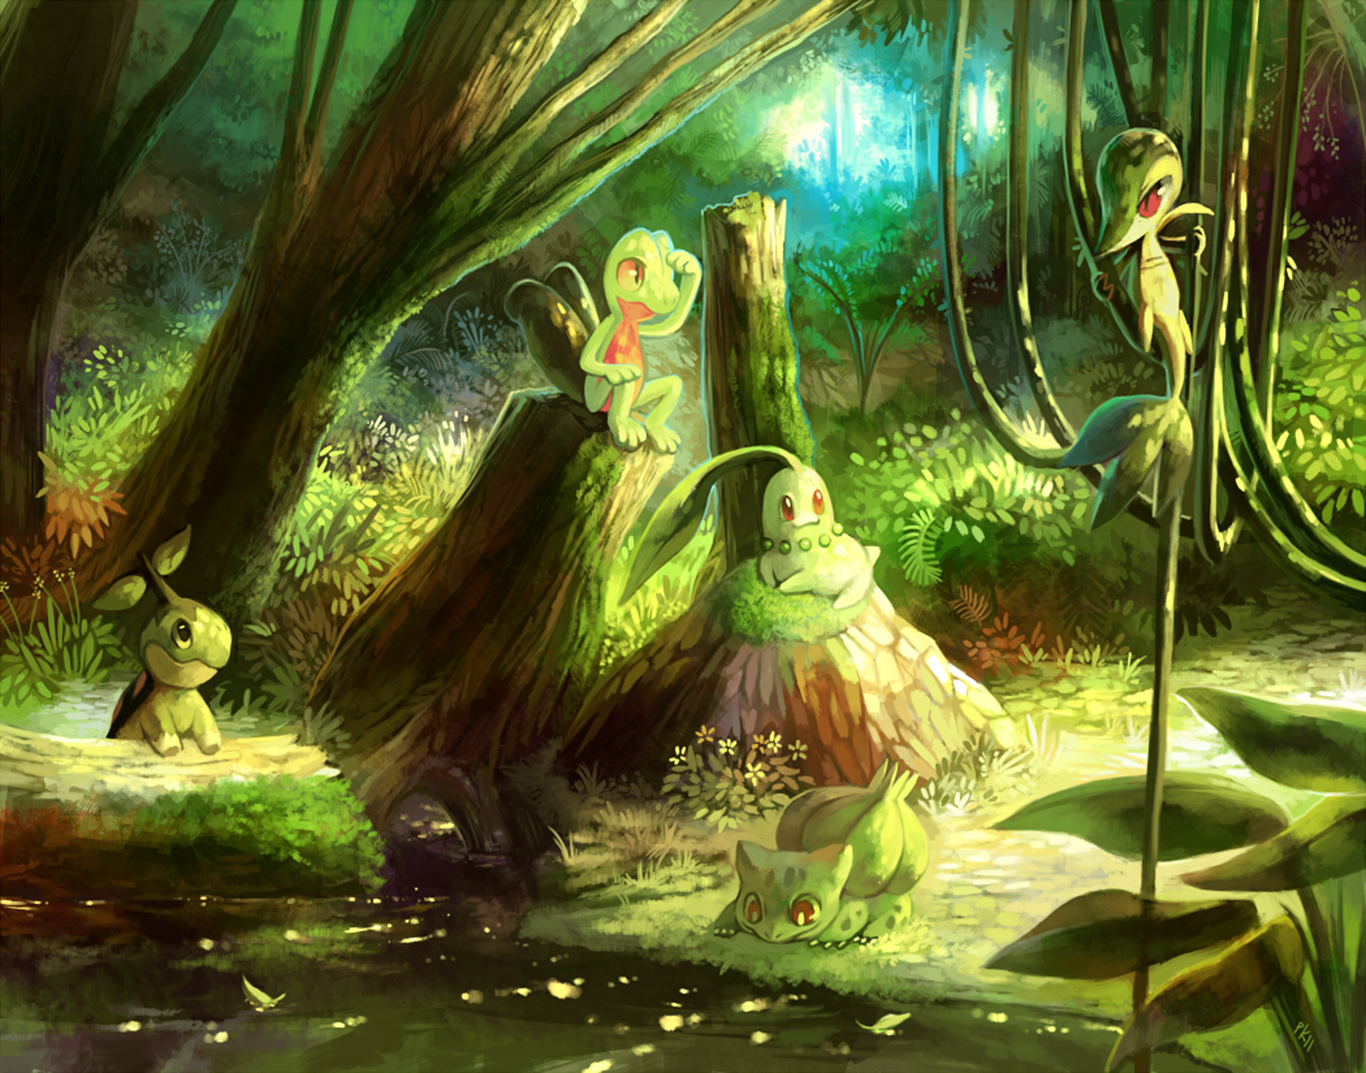 Anime Pokemon Pokémon Grass Pokémon Treecko Chikorita Snivy Turtwig Bulbasaur Starter Pokemon Wallpaper